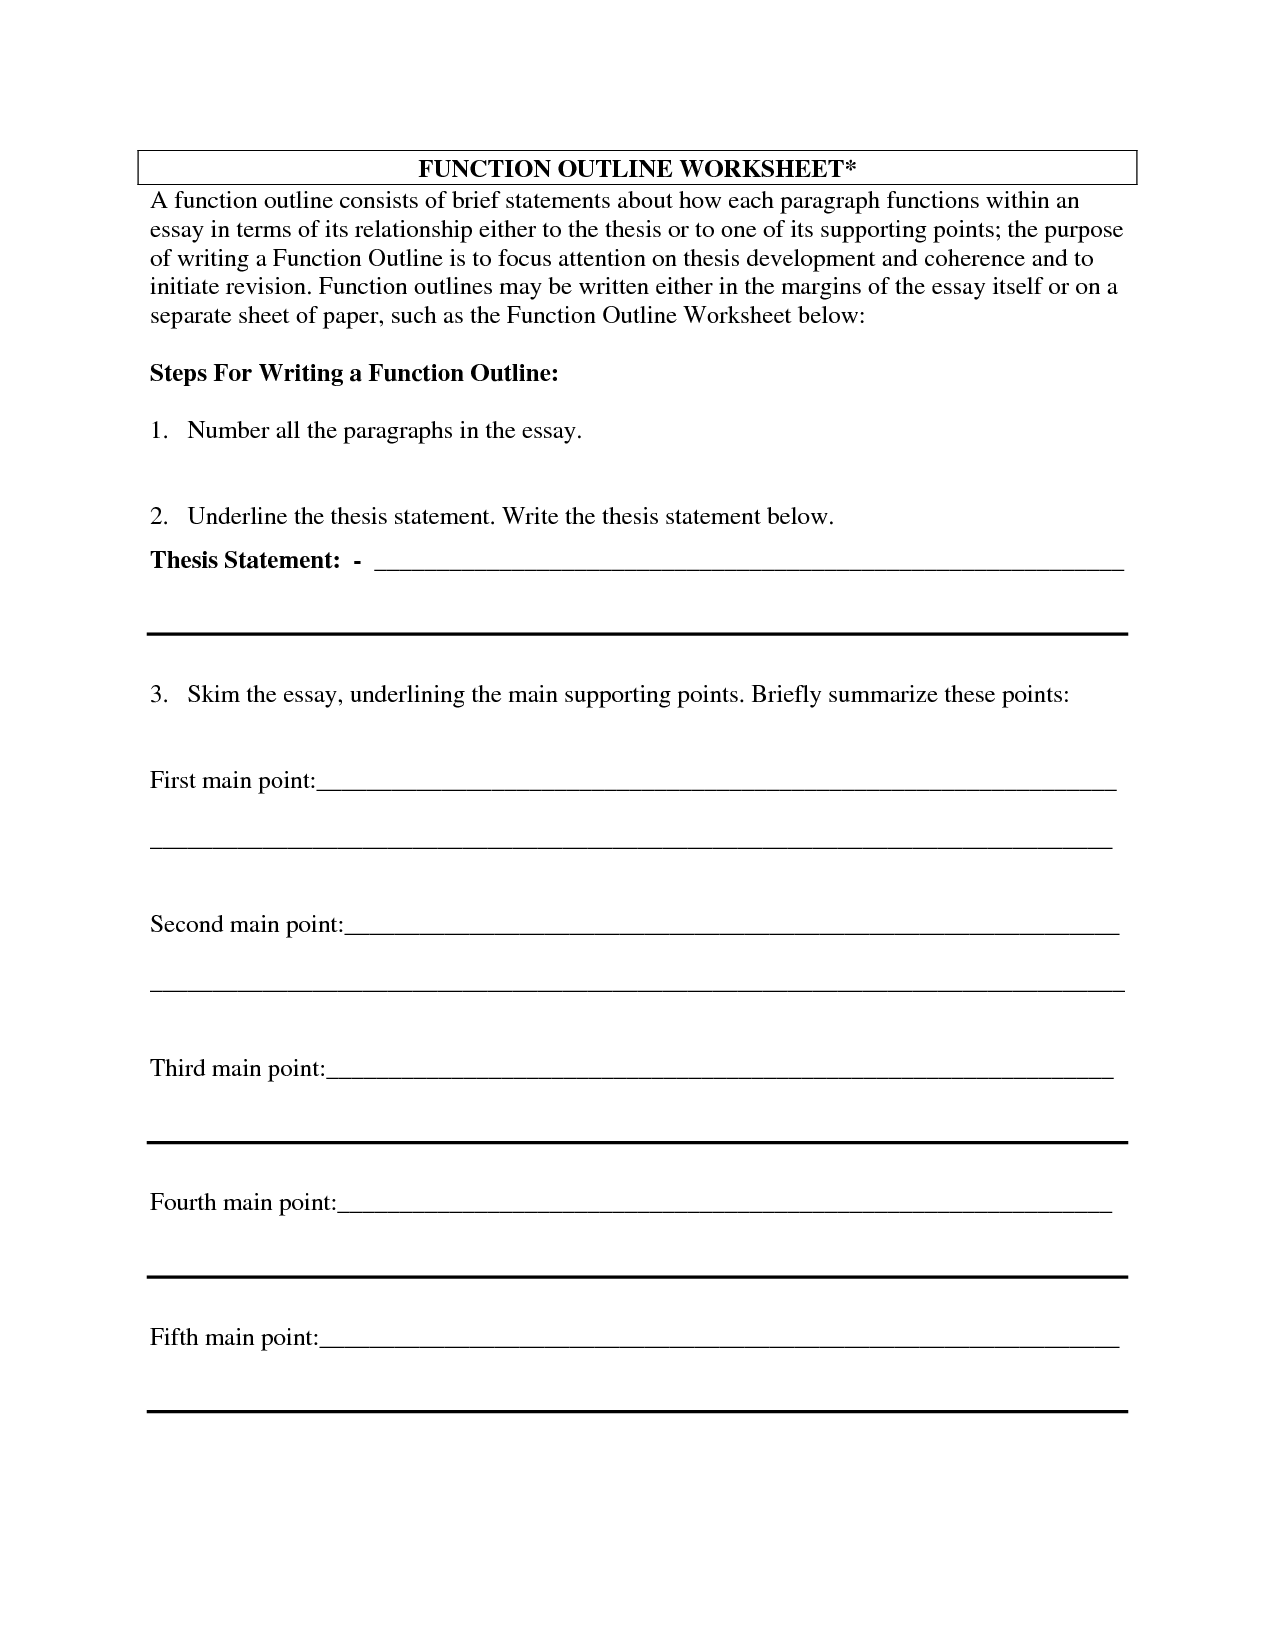 Essay outline worksheet